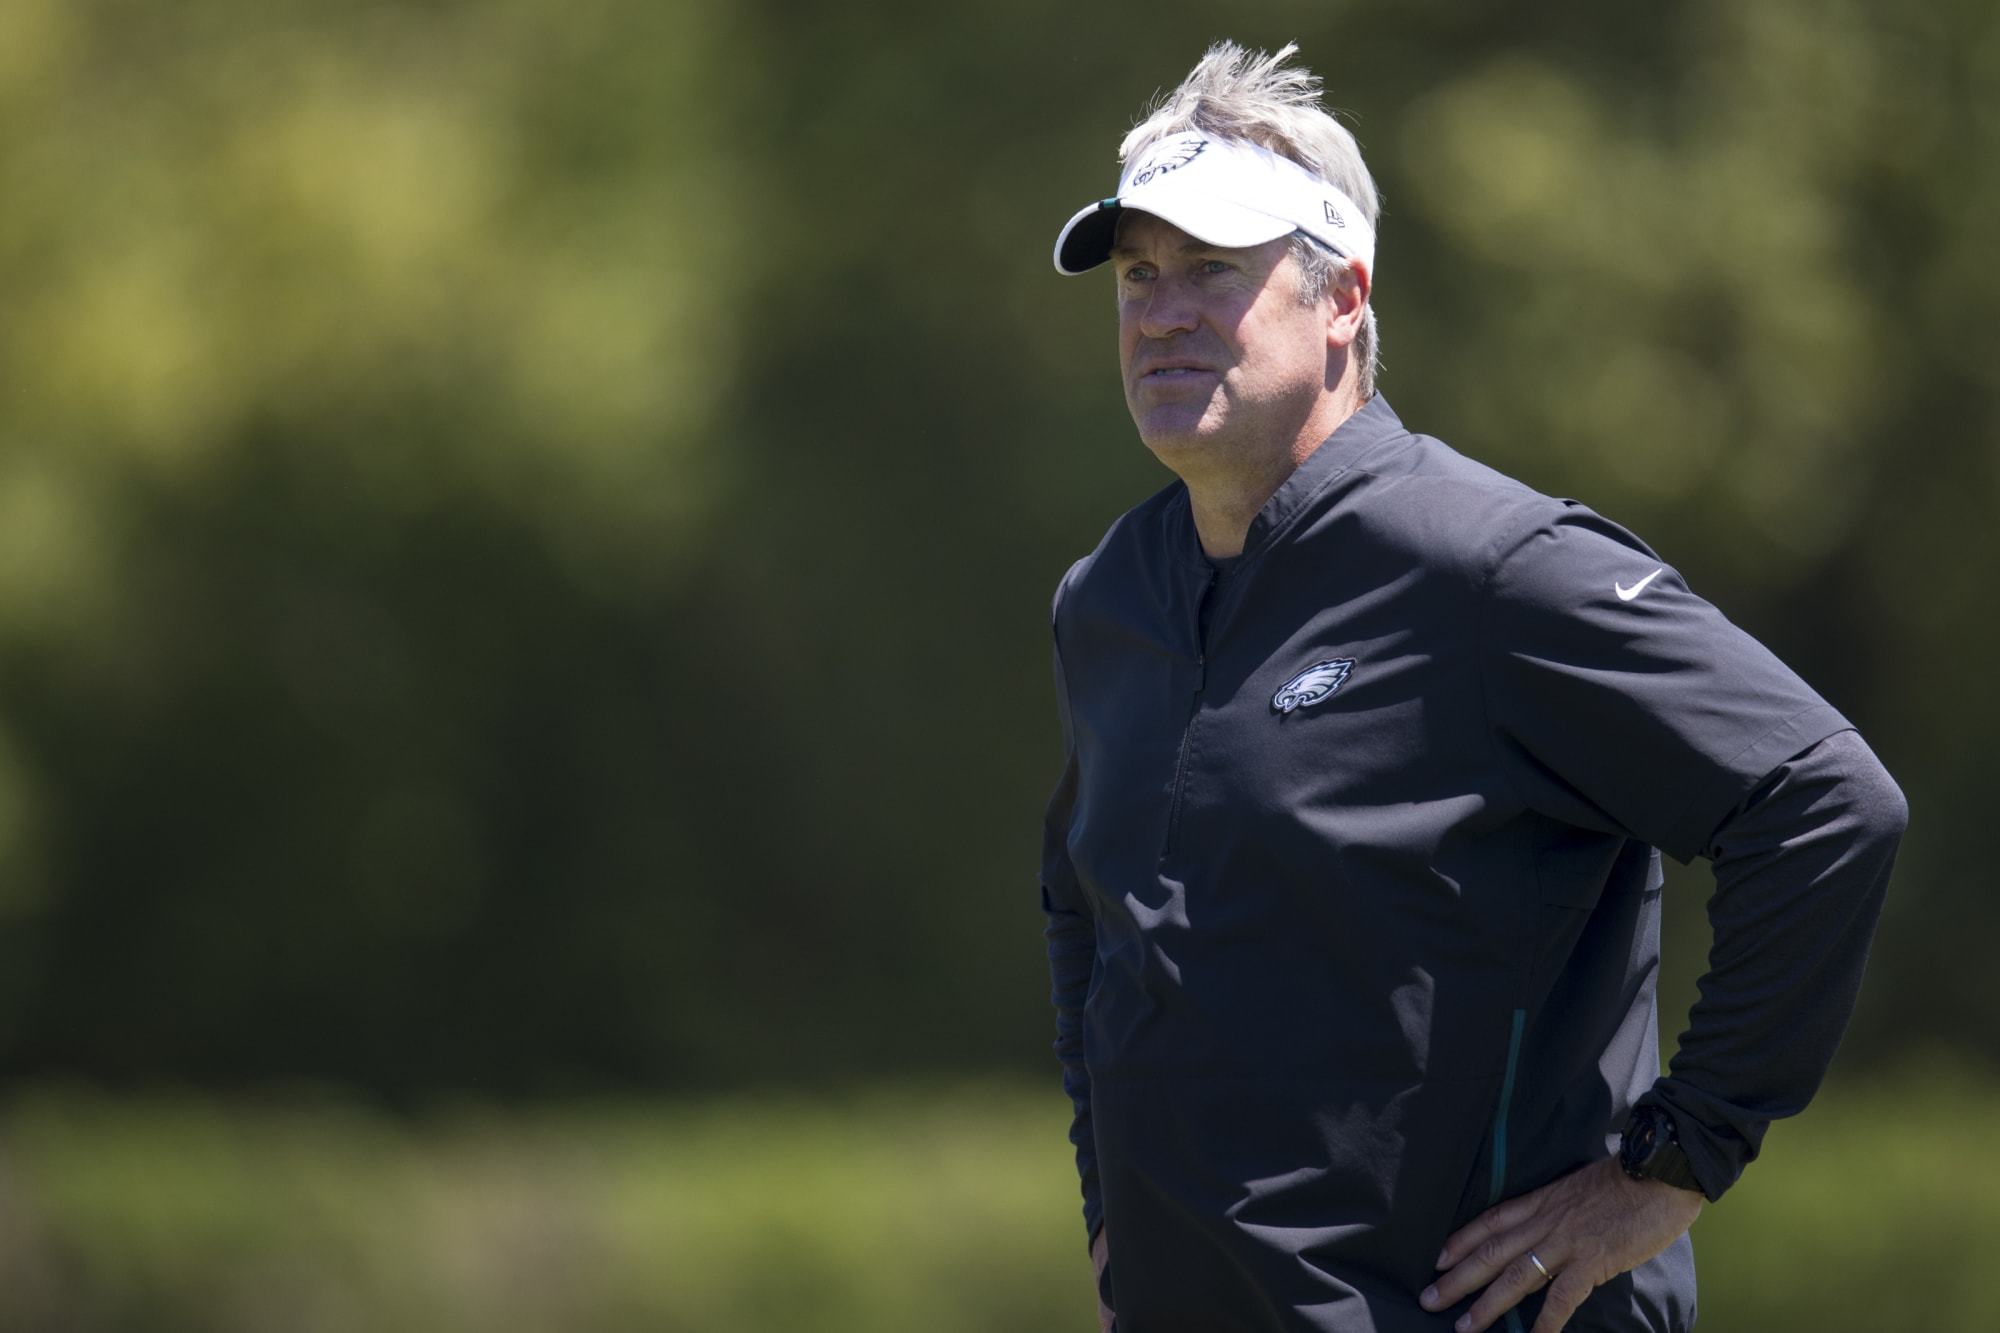 Philadelphia Eagles: Pederson may return to NovaCare Complex this week